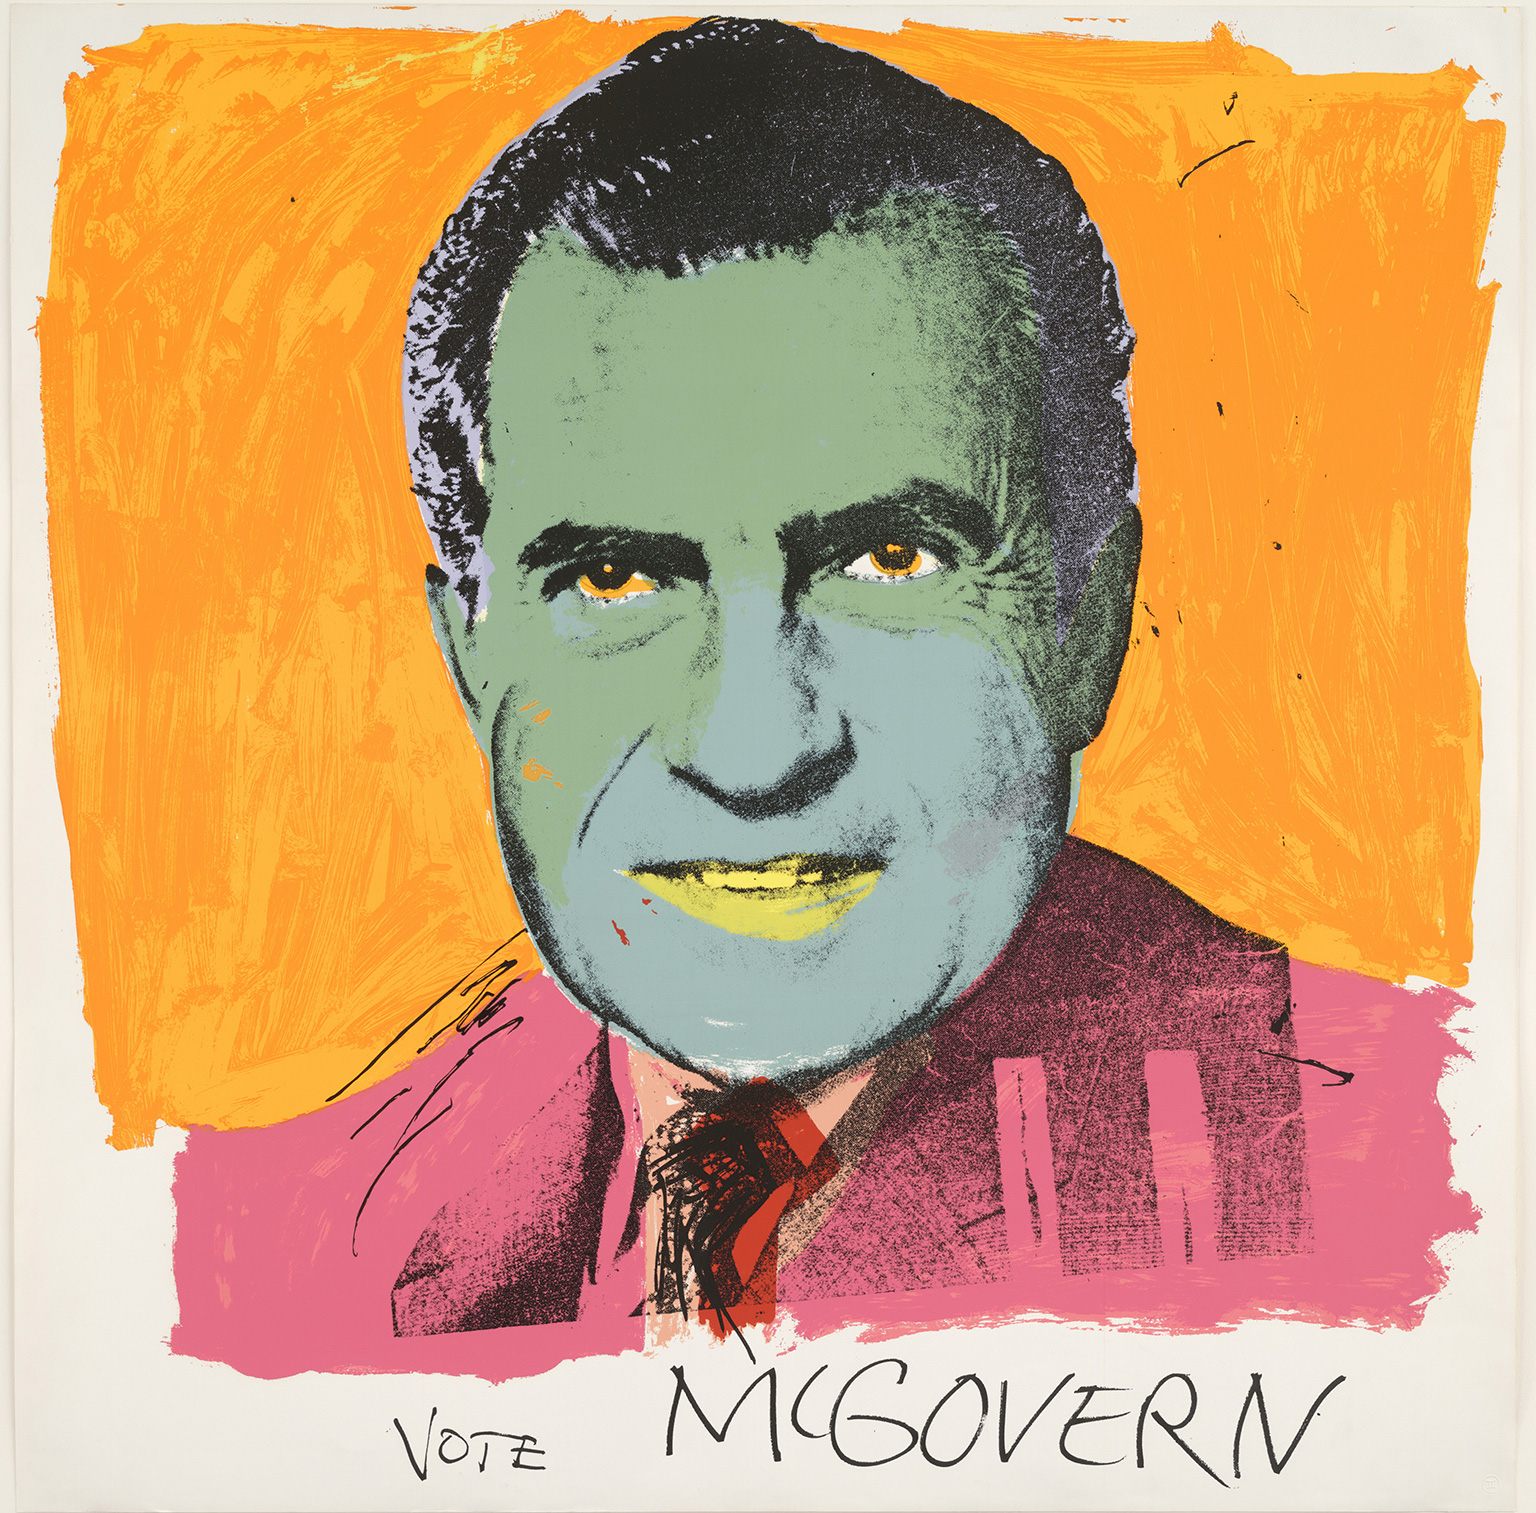 Andy Warhol, Vote McGovern, 1972 at British Museum's American Dream - © 2016 The Andy Warhol Foundation for the Visual Arts, Inc./Artists Rights Society (ARS), New York and DACS, London.